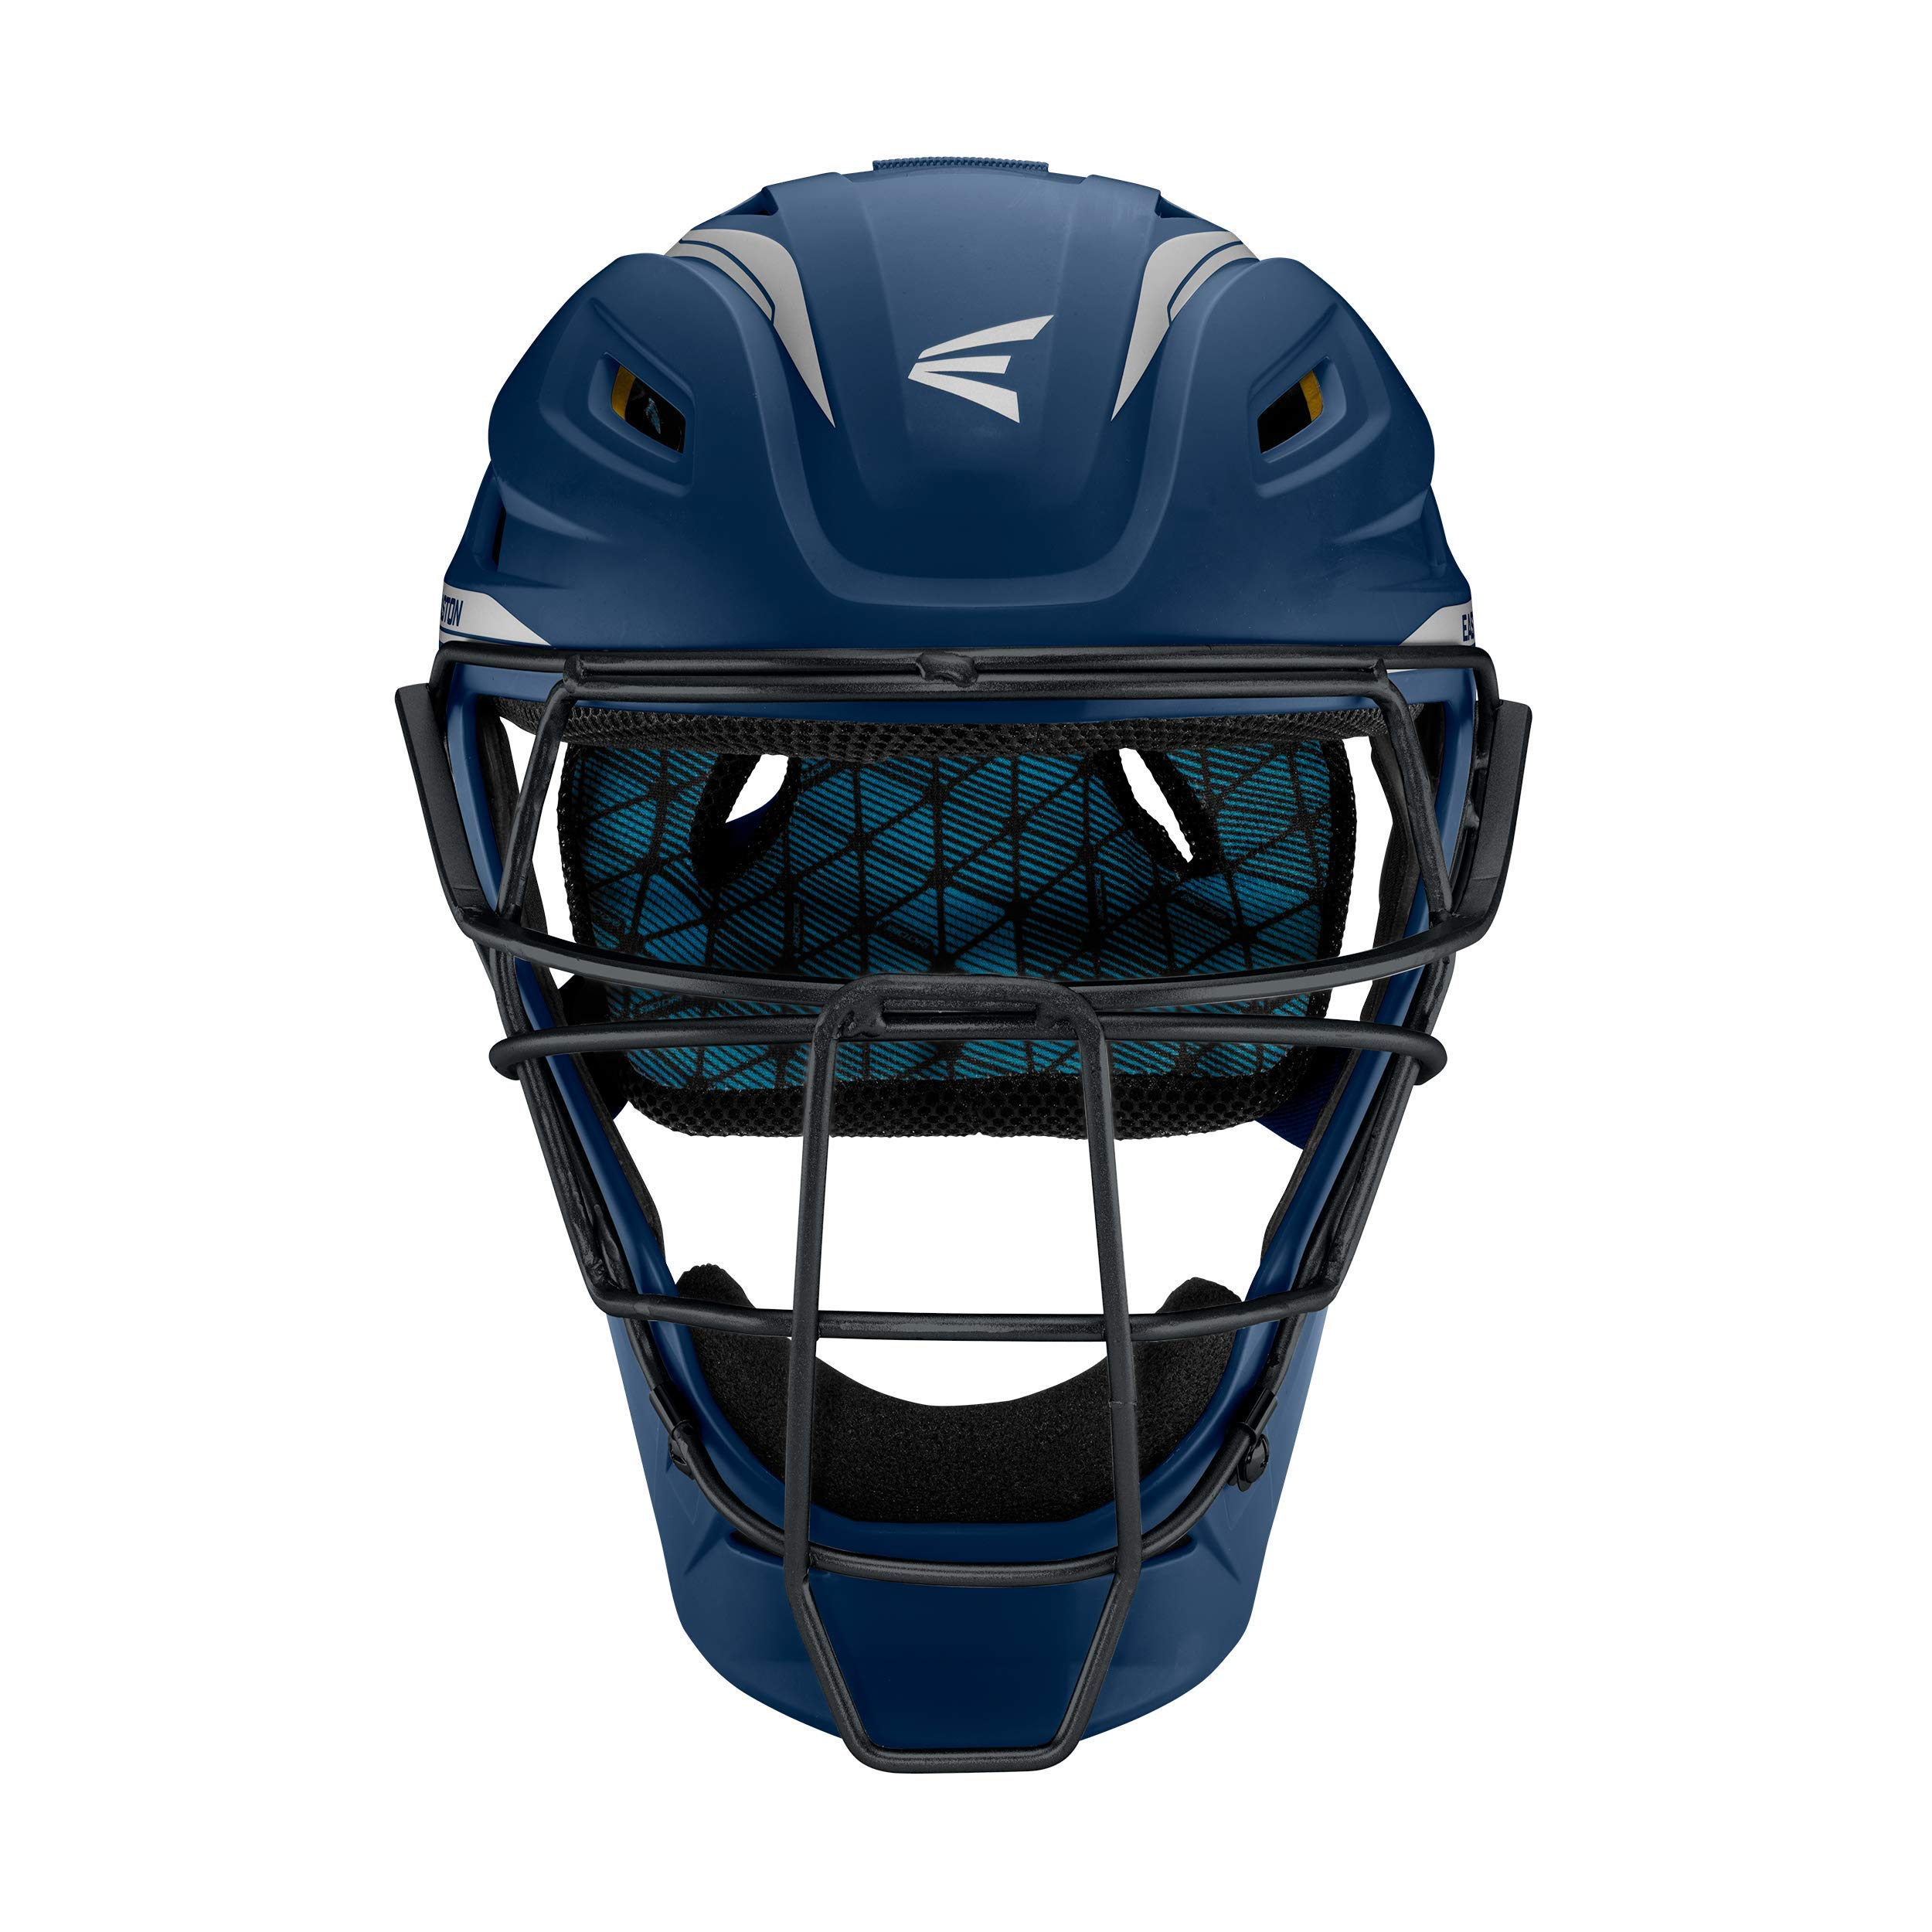 Easton Pro x Catchers Helmet Pro-X C-Helmet NY/Sl S, Navy/ Silver, Small by Easton